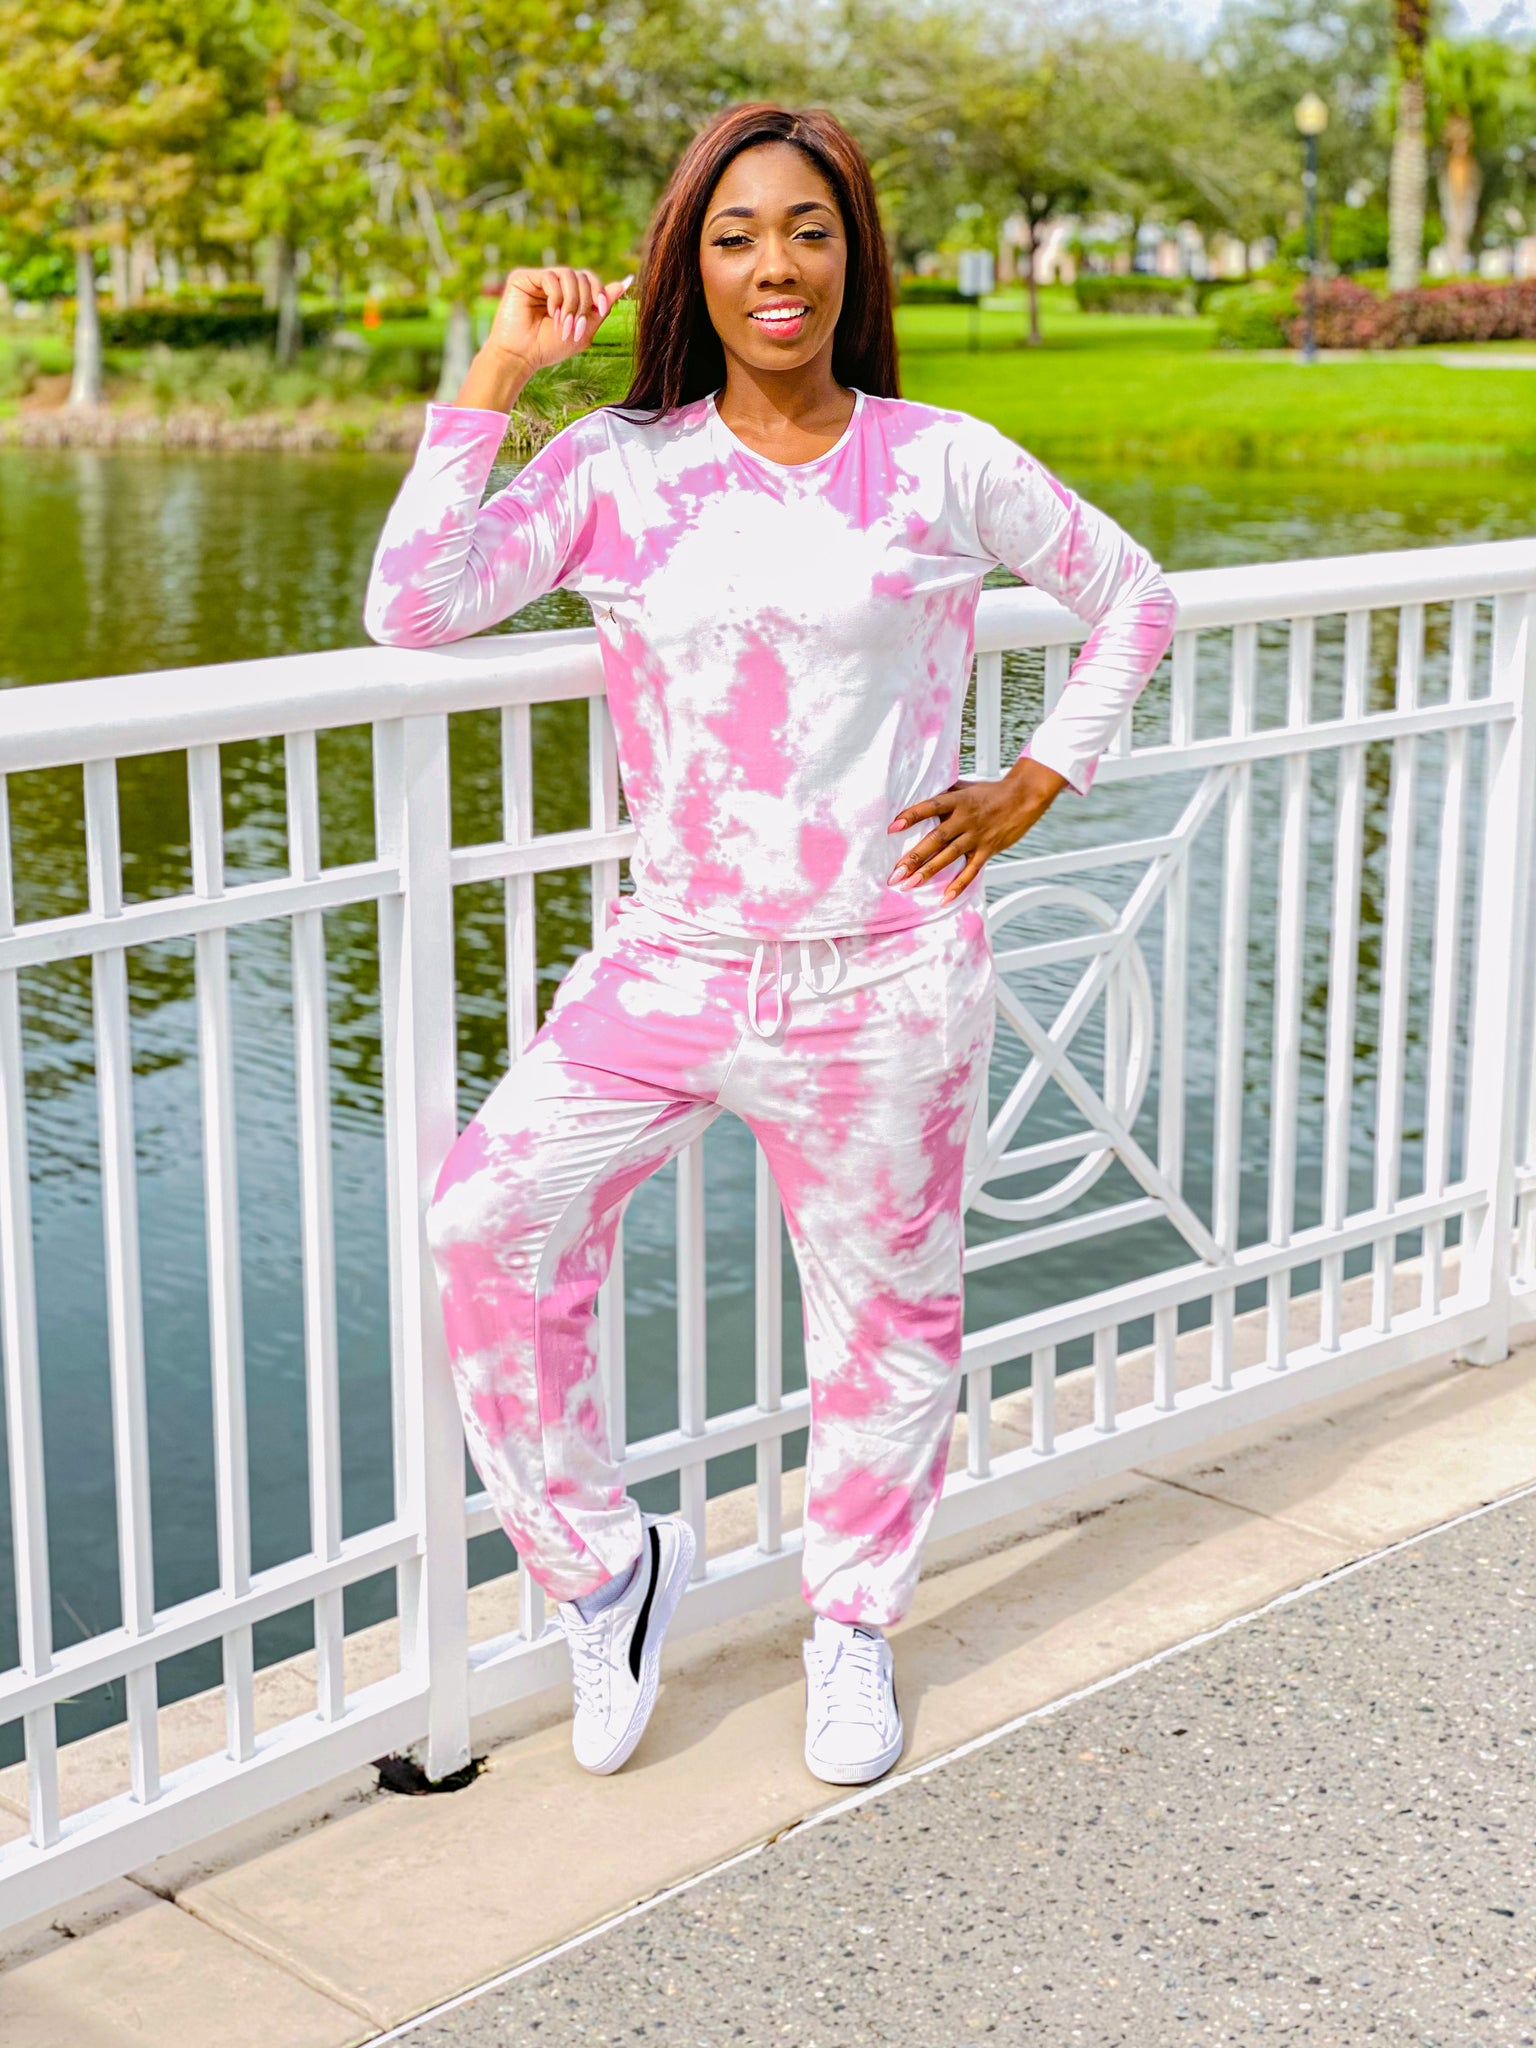 Chill With Me - Tie Dye Long Sleeve Jogger Set. - TheSimKaiShoppe Fashion Women & Children's Clothing, Jewellery & Accessories